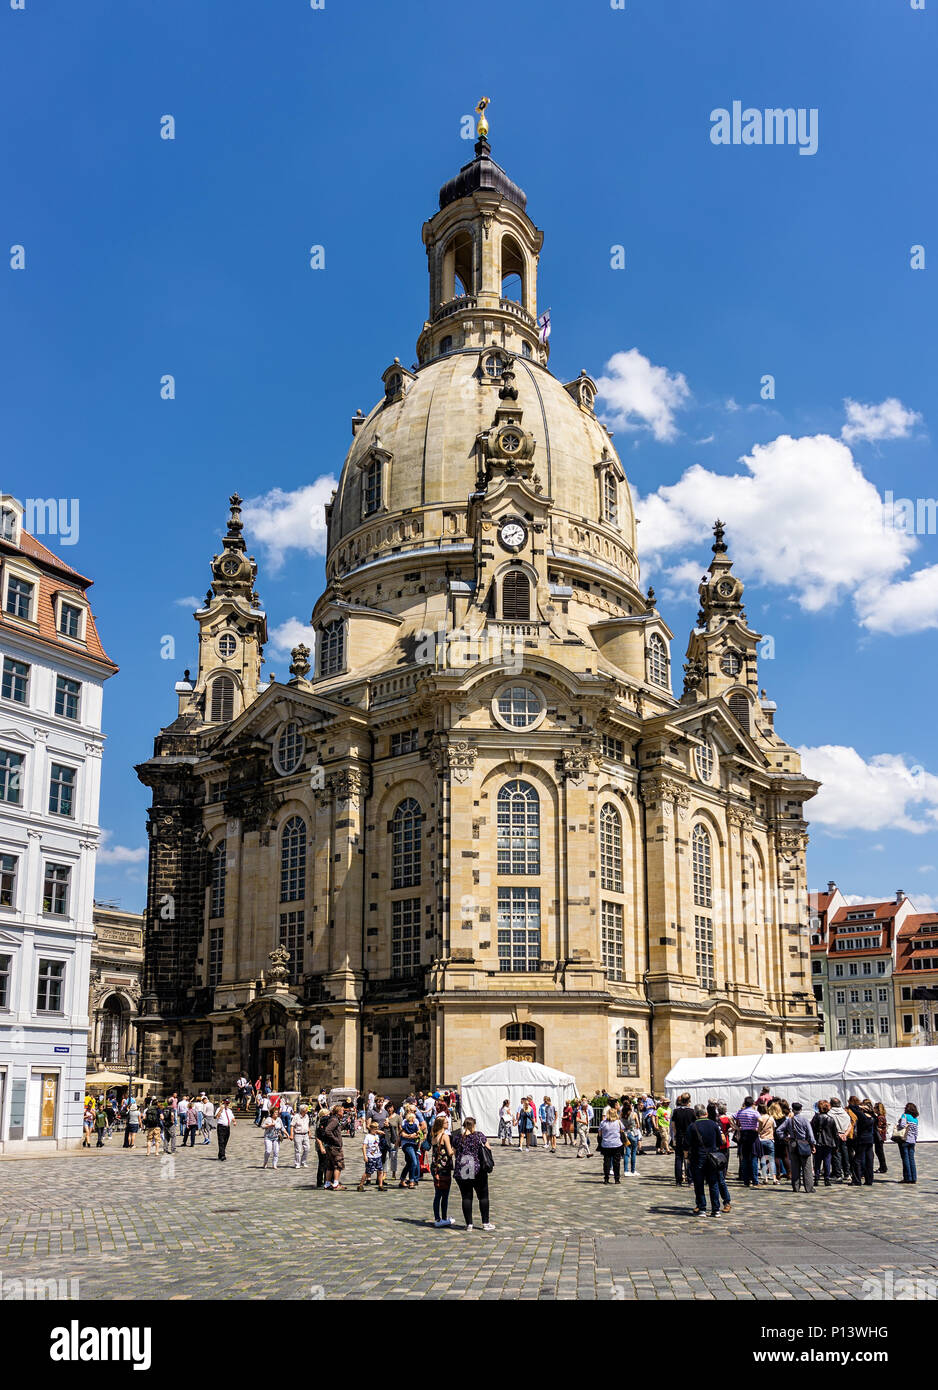 DRESDEN, GERMANY - May 21, 2018: Dresden Frauenkirche - Lutheran church in Saxony of Germany. Destroyed in 1945, reopend in 2005 - Stock Image